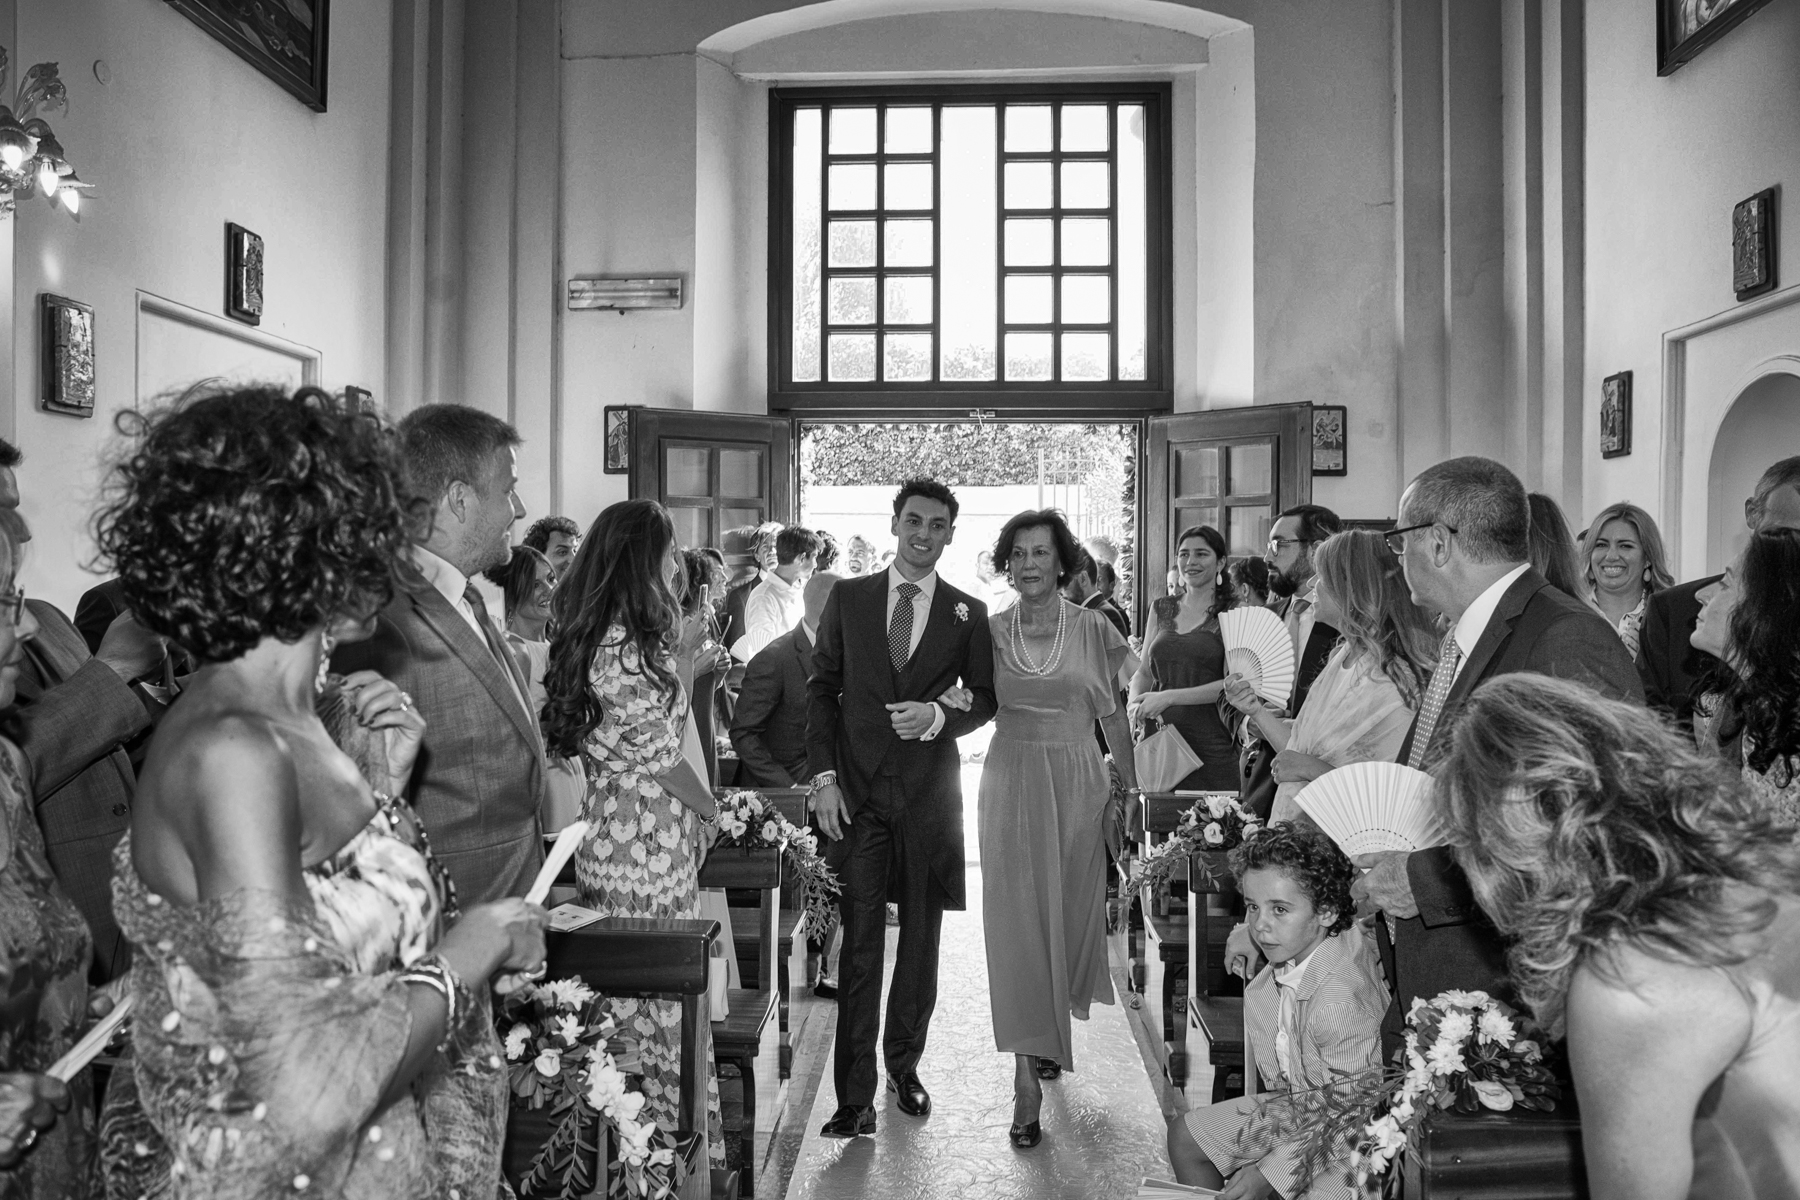 0088-_MG_6684-Modificafotografo-matrimonio-napoli-scattidamore